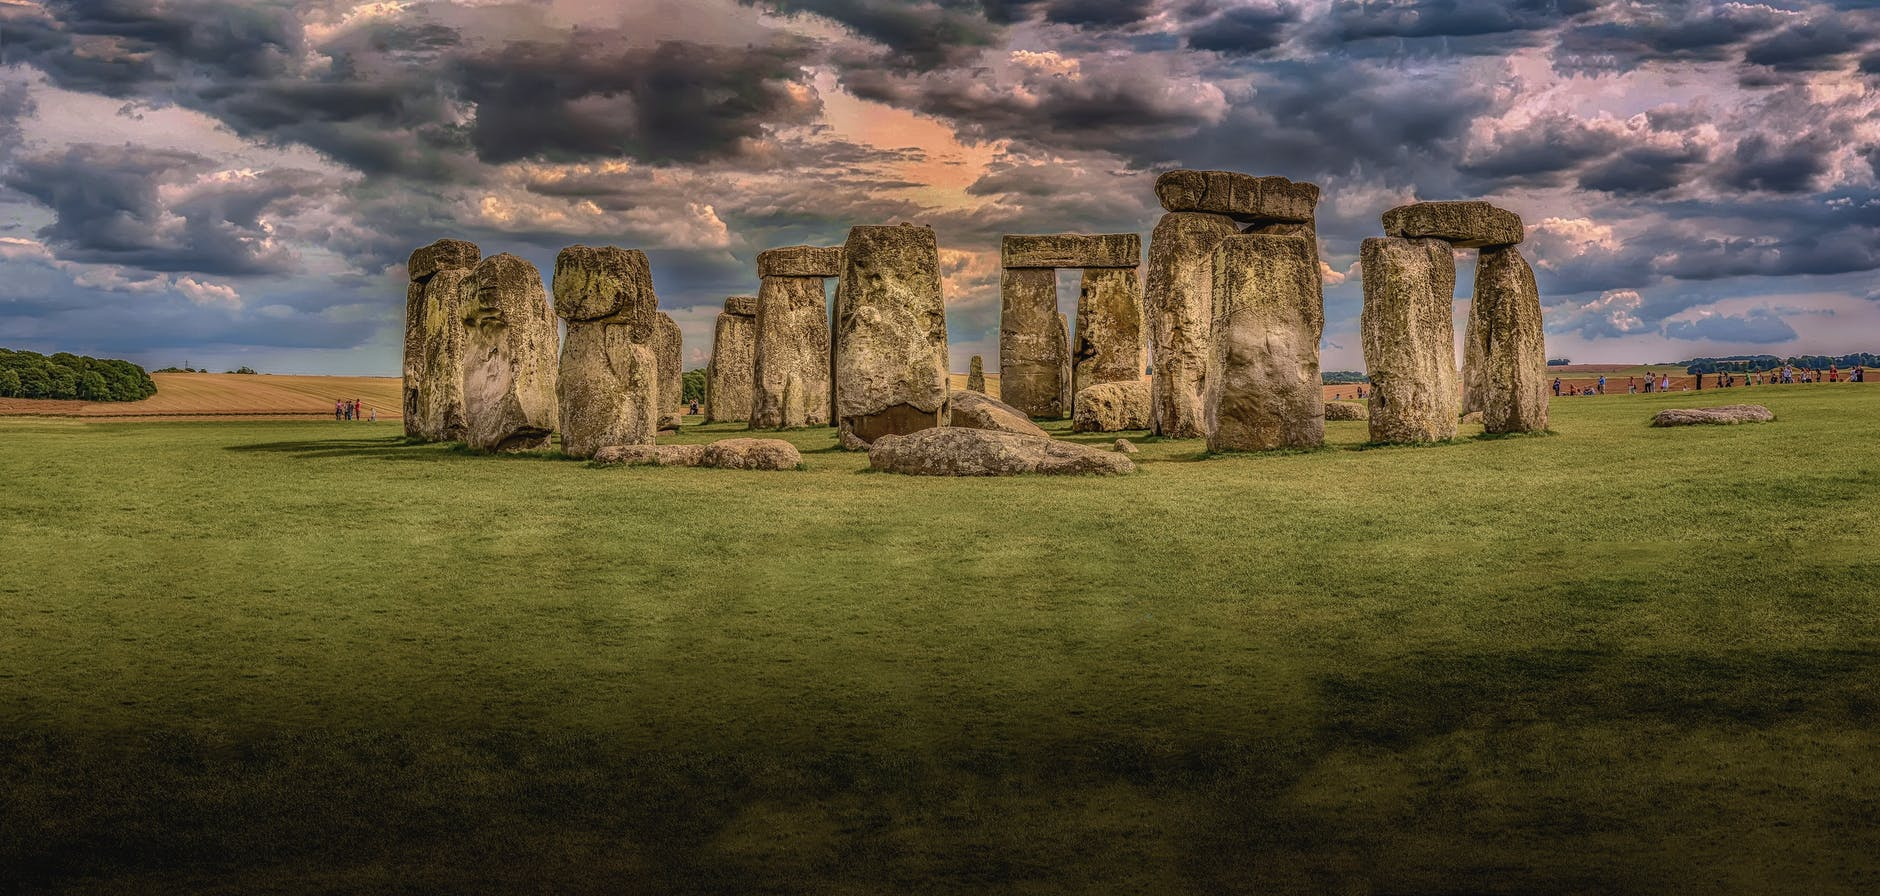 An image of Stonehenge. Clouds hang over the monumental stones and the grass is green.